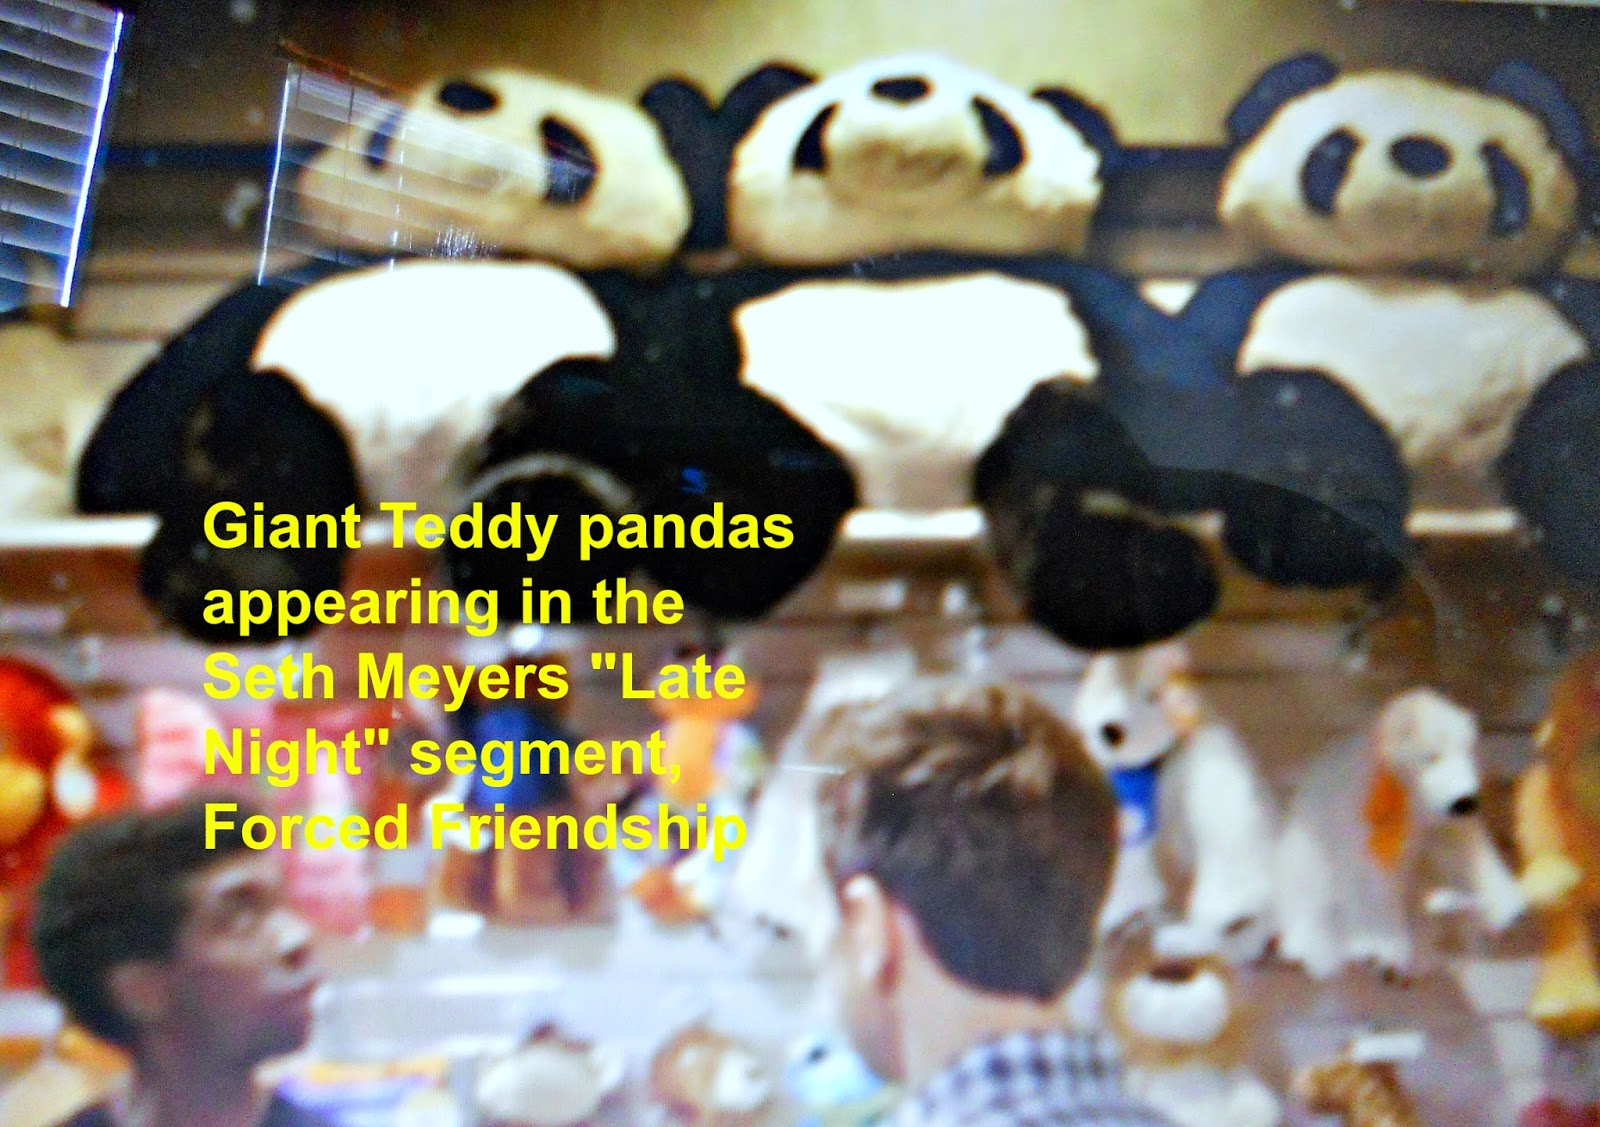 Giant Teddy panda bears